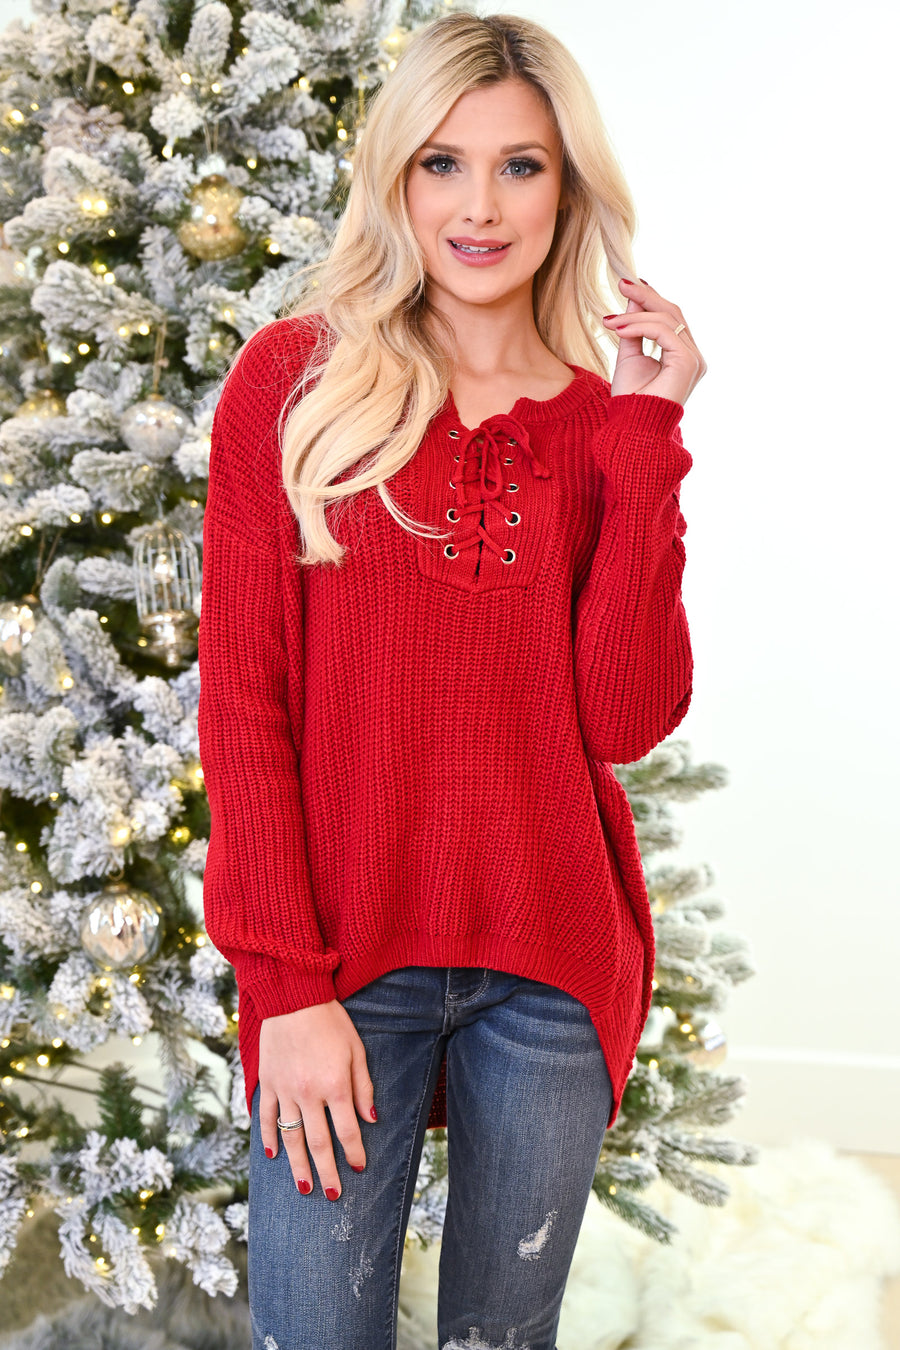 Snuggle Season Lace-Up Sweater - Cherry women's knit top, Closet Candy Boutique 1